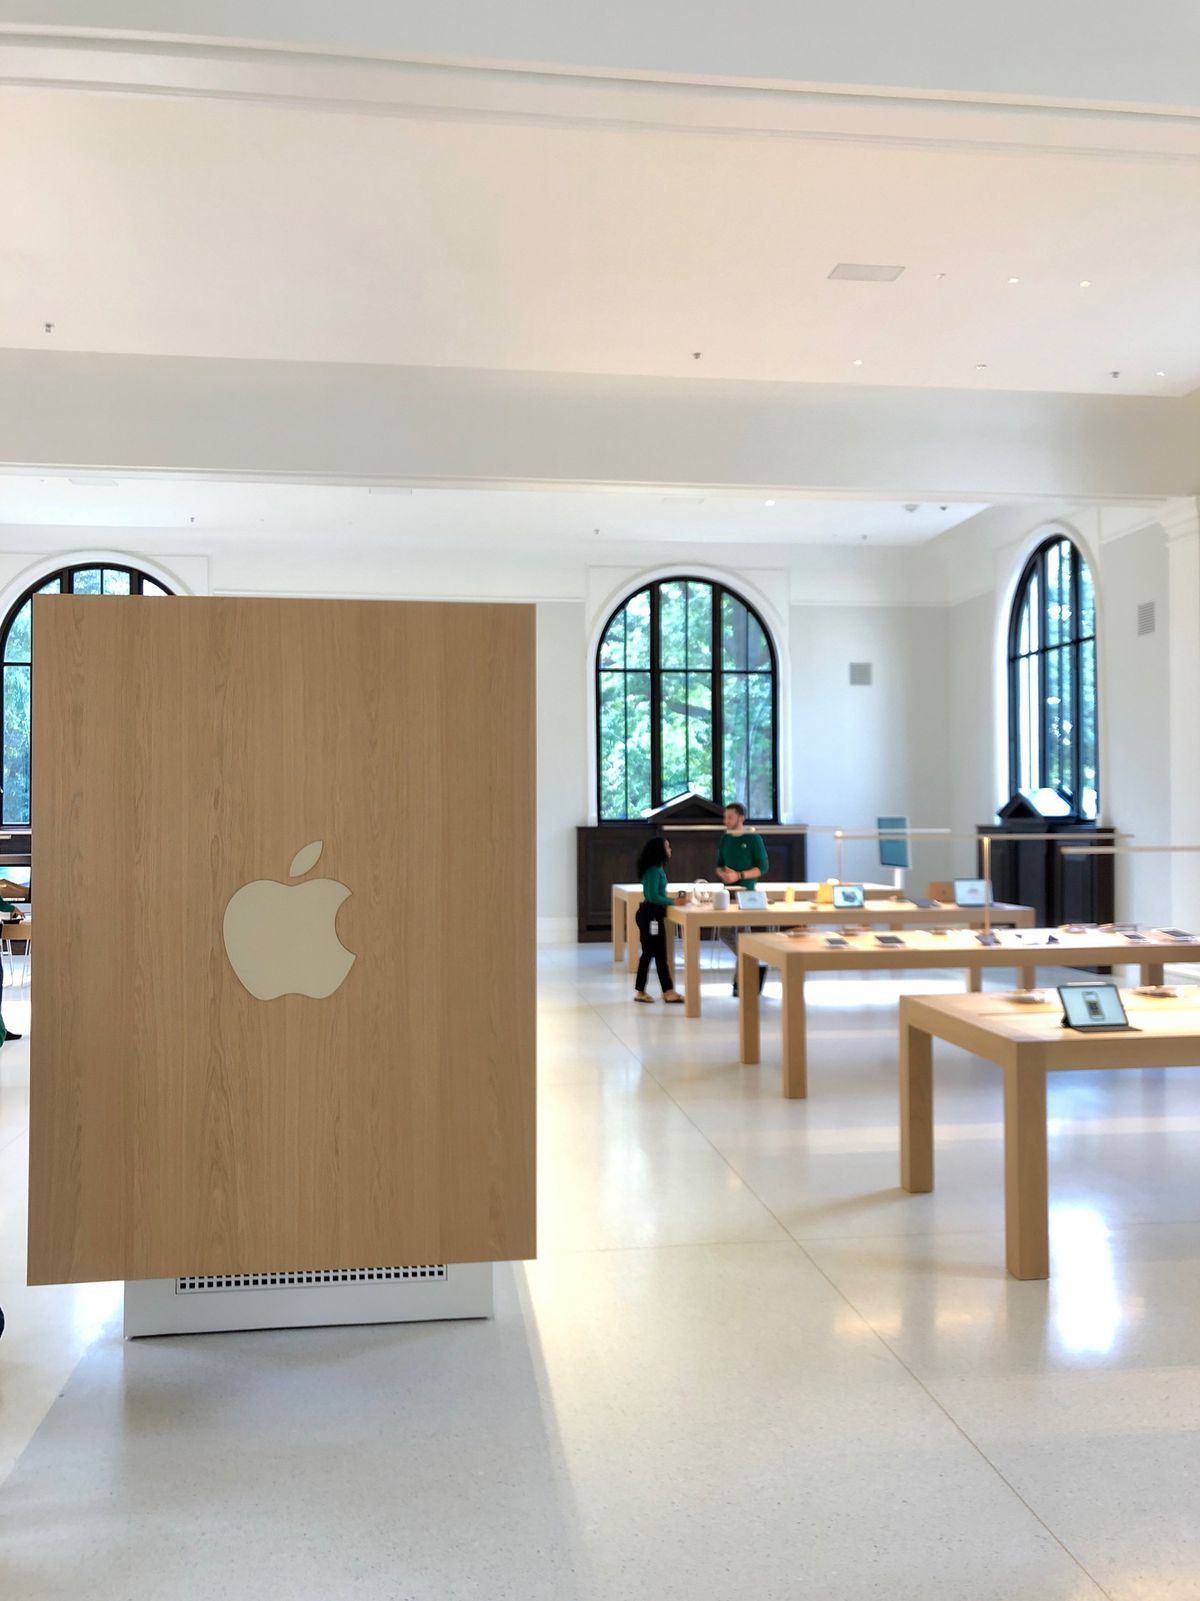 DC Apple store Carnegie Library opened: architecture, tech